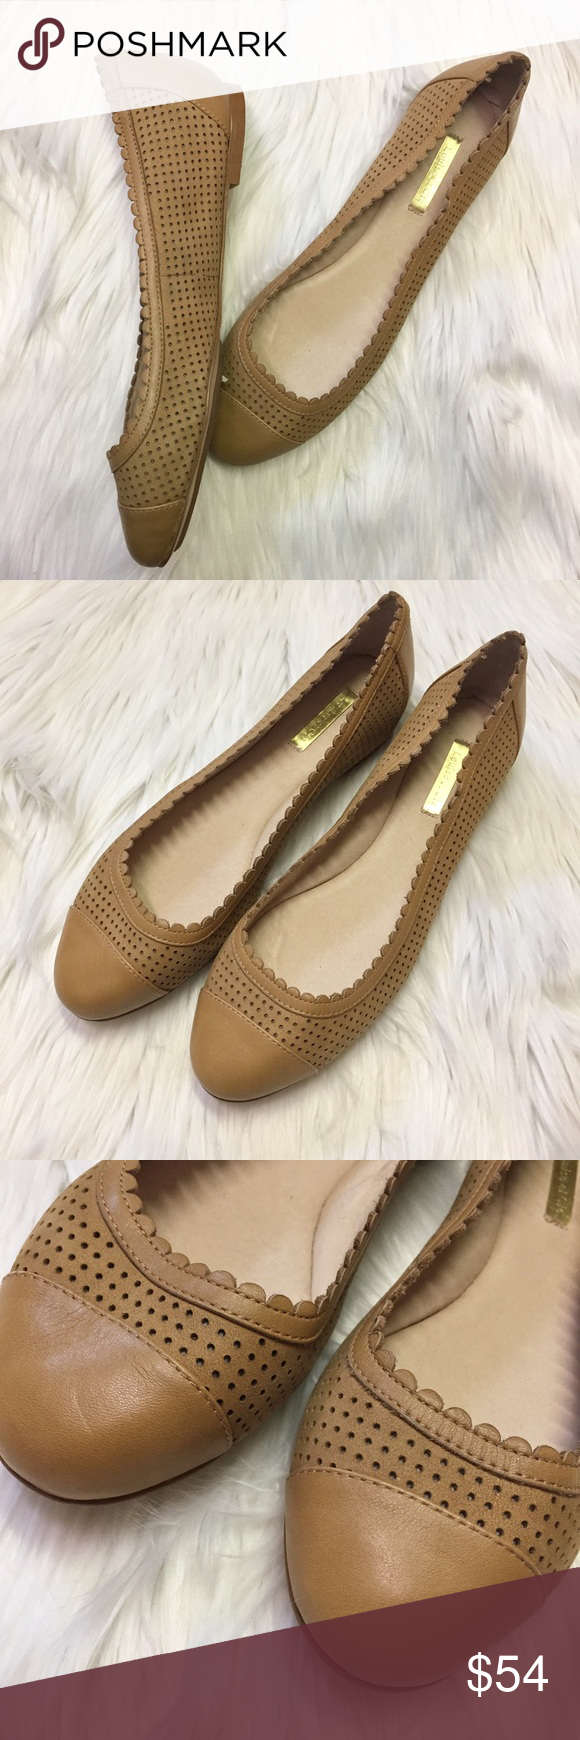 e7bd1598566 Louise er Cie Eilley Perforated Ballet Flats Beautiful soft pigskin leather  laser cut flats in a lovely tan color. Scalloped edge